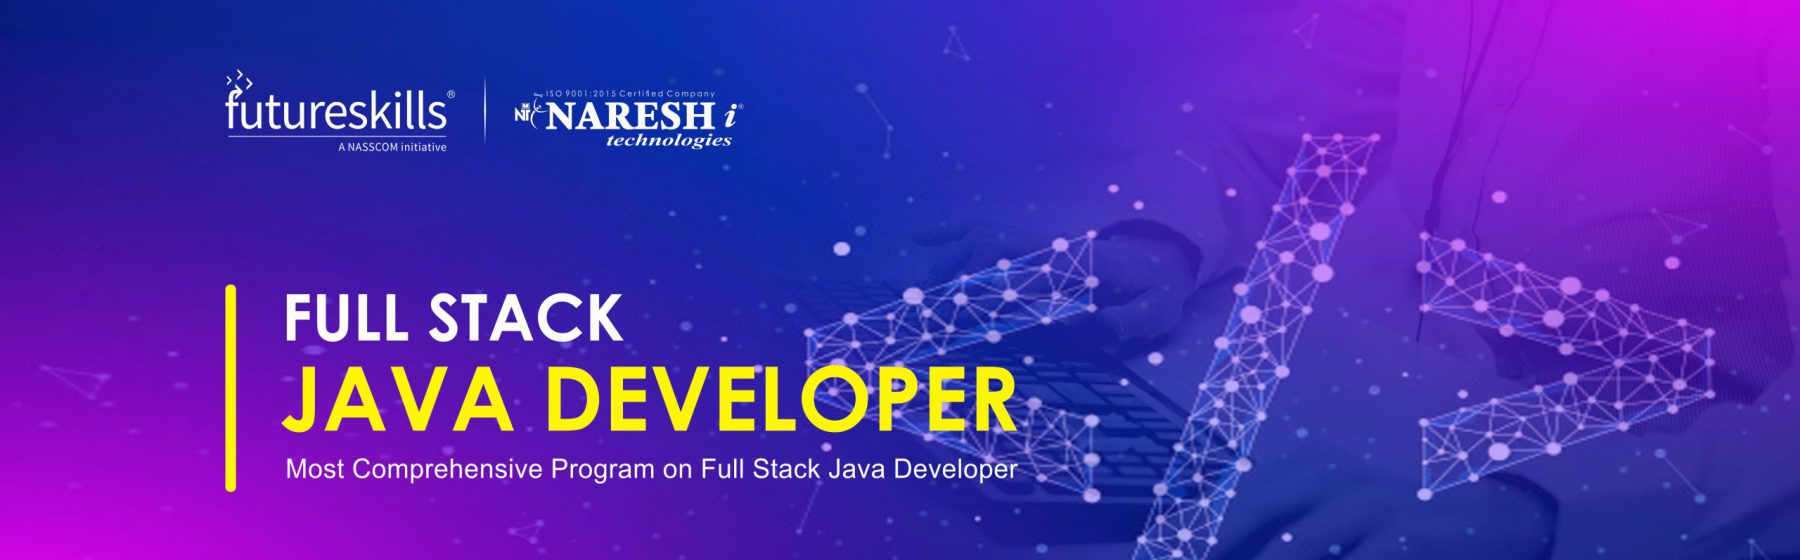 Full-stack-java-developer-program by NareshIT-Nascom Future skills program